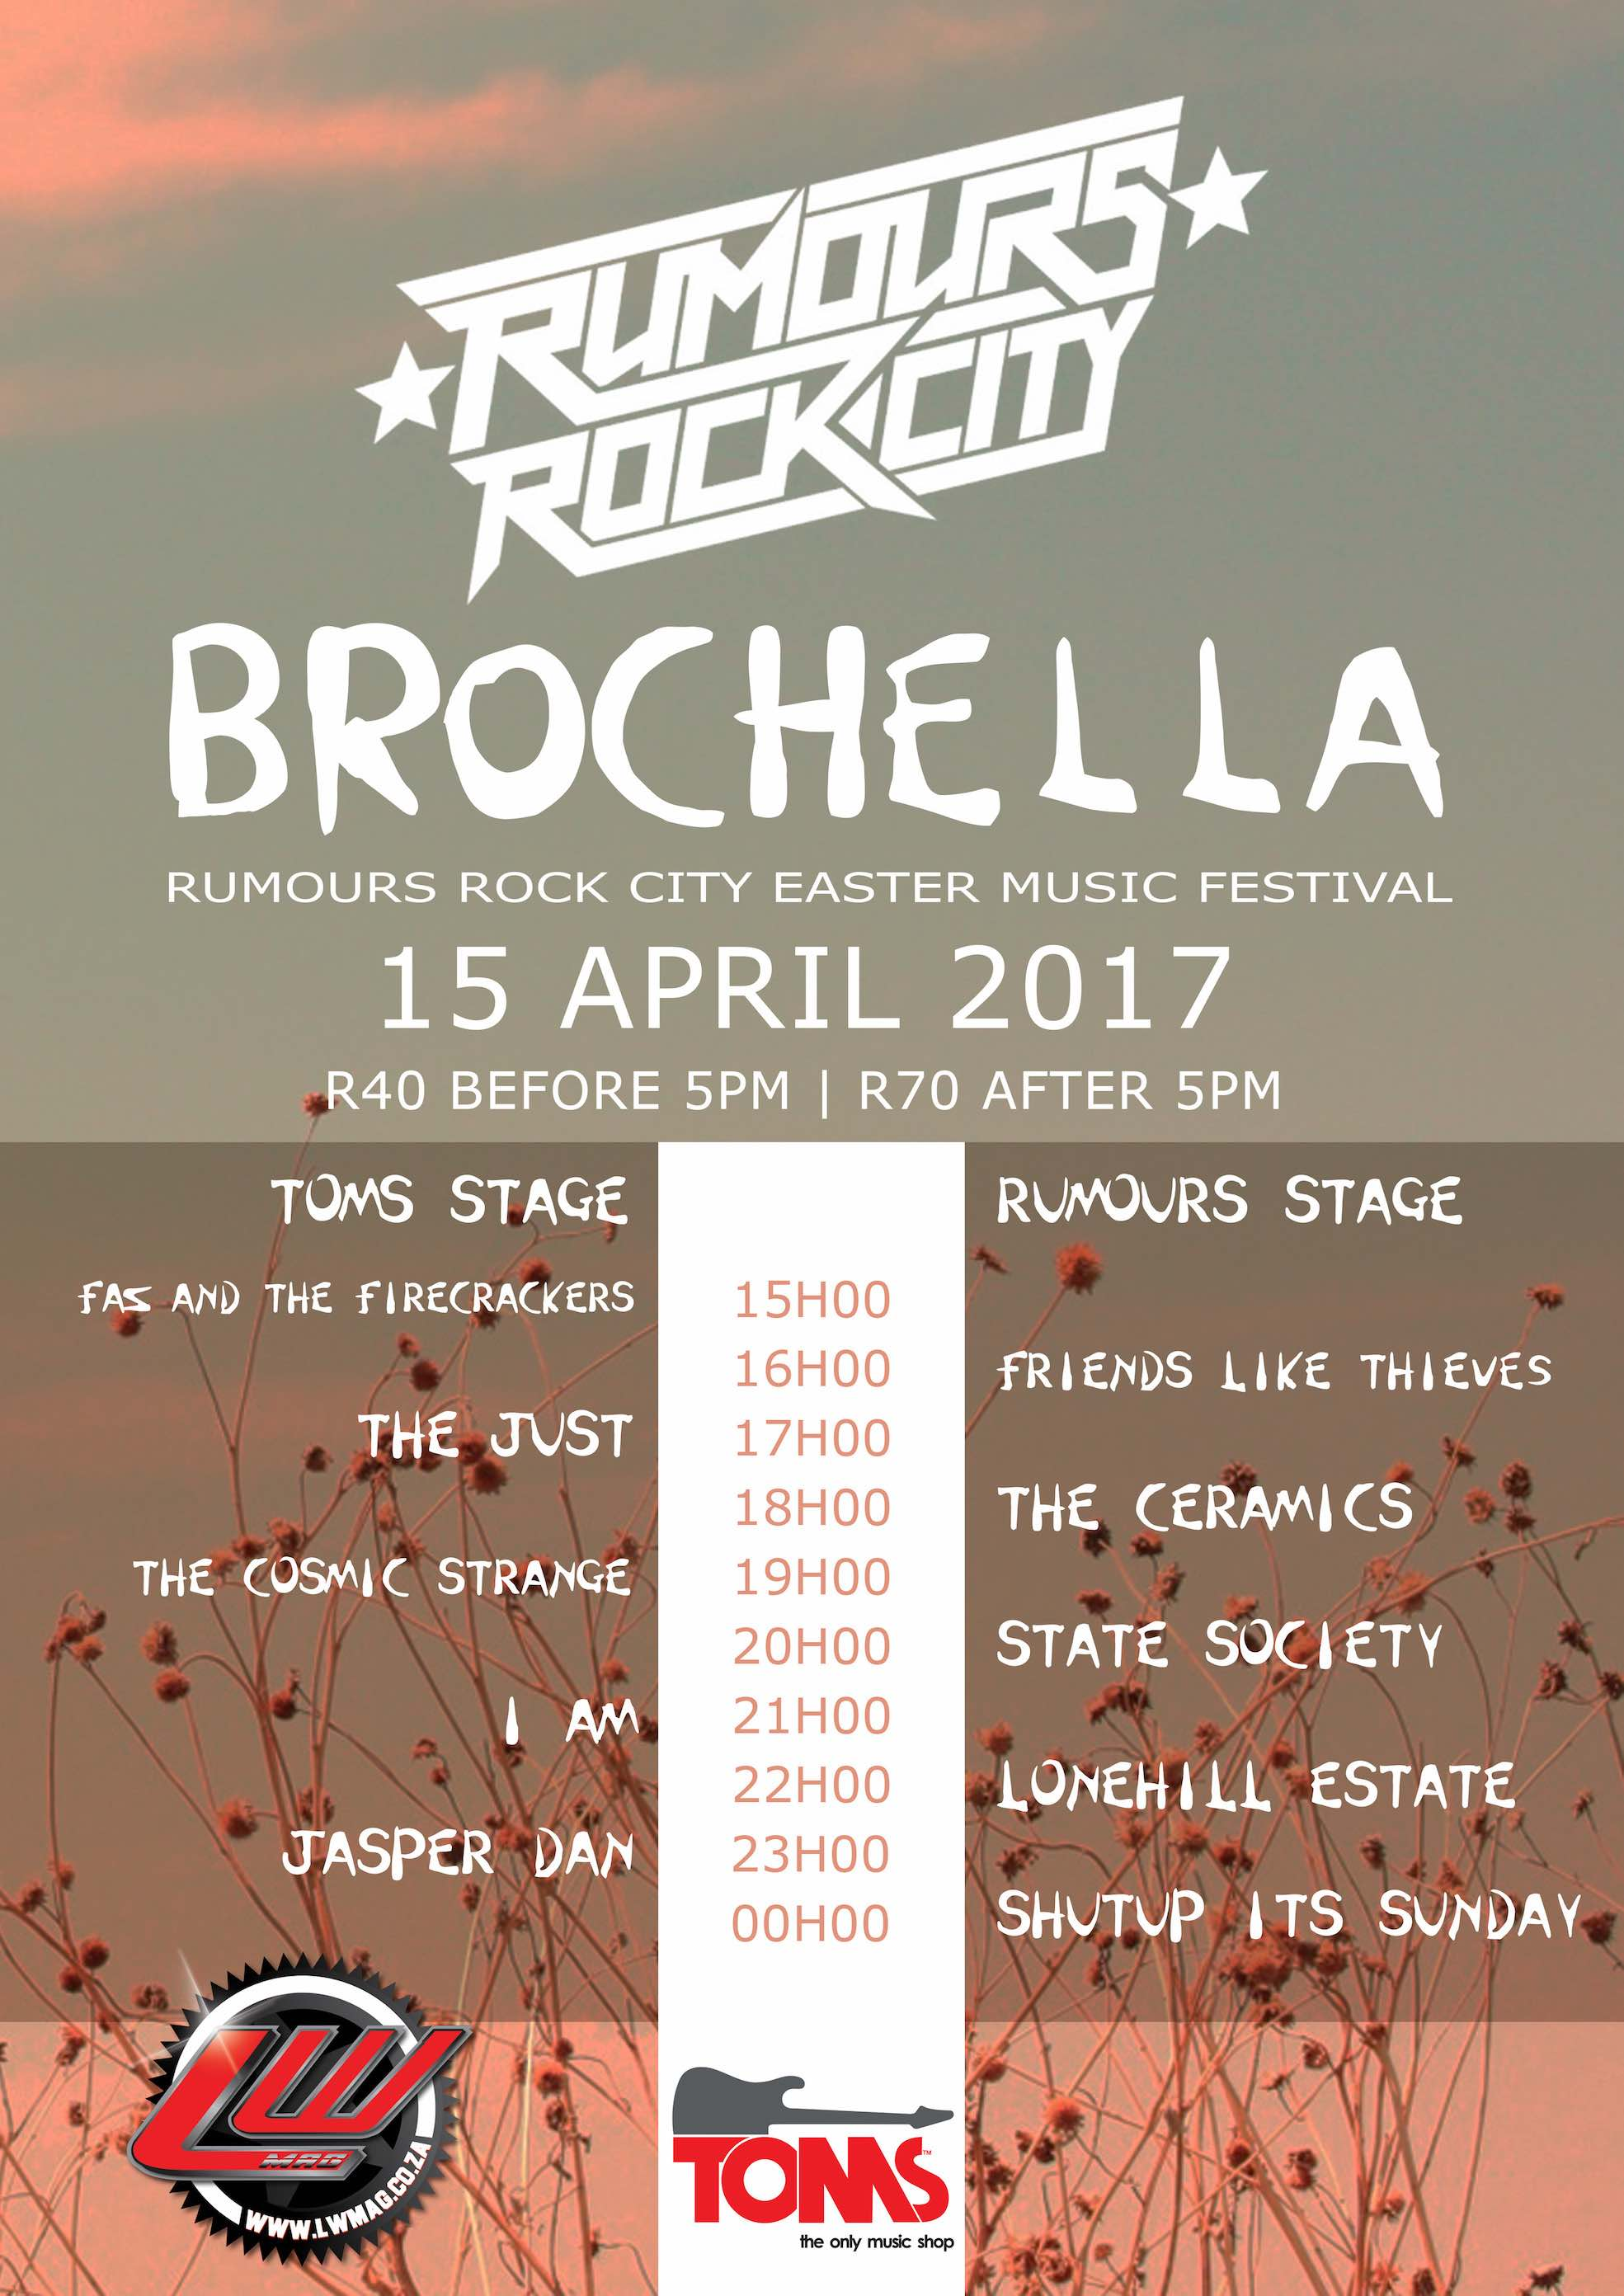 South African Music acts performing at the first annual Brochella Festival